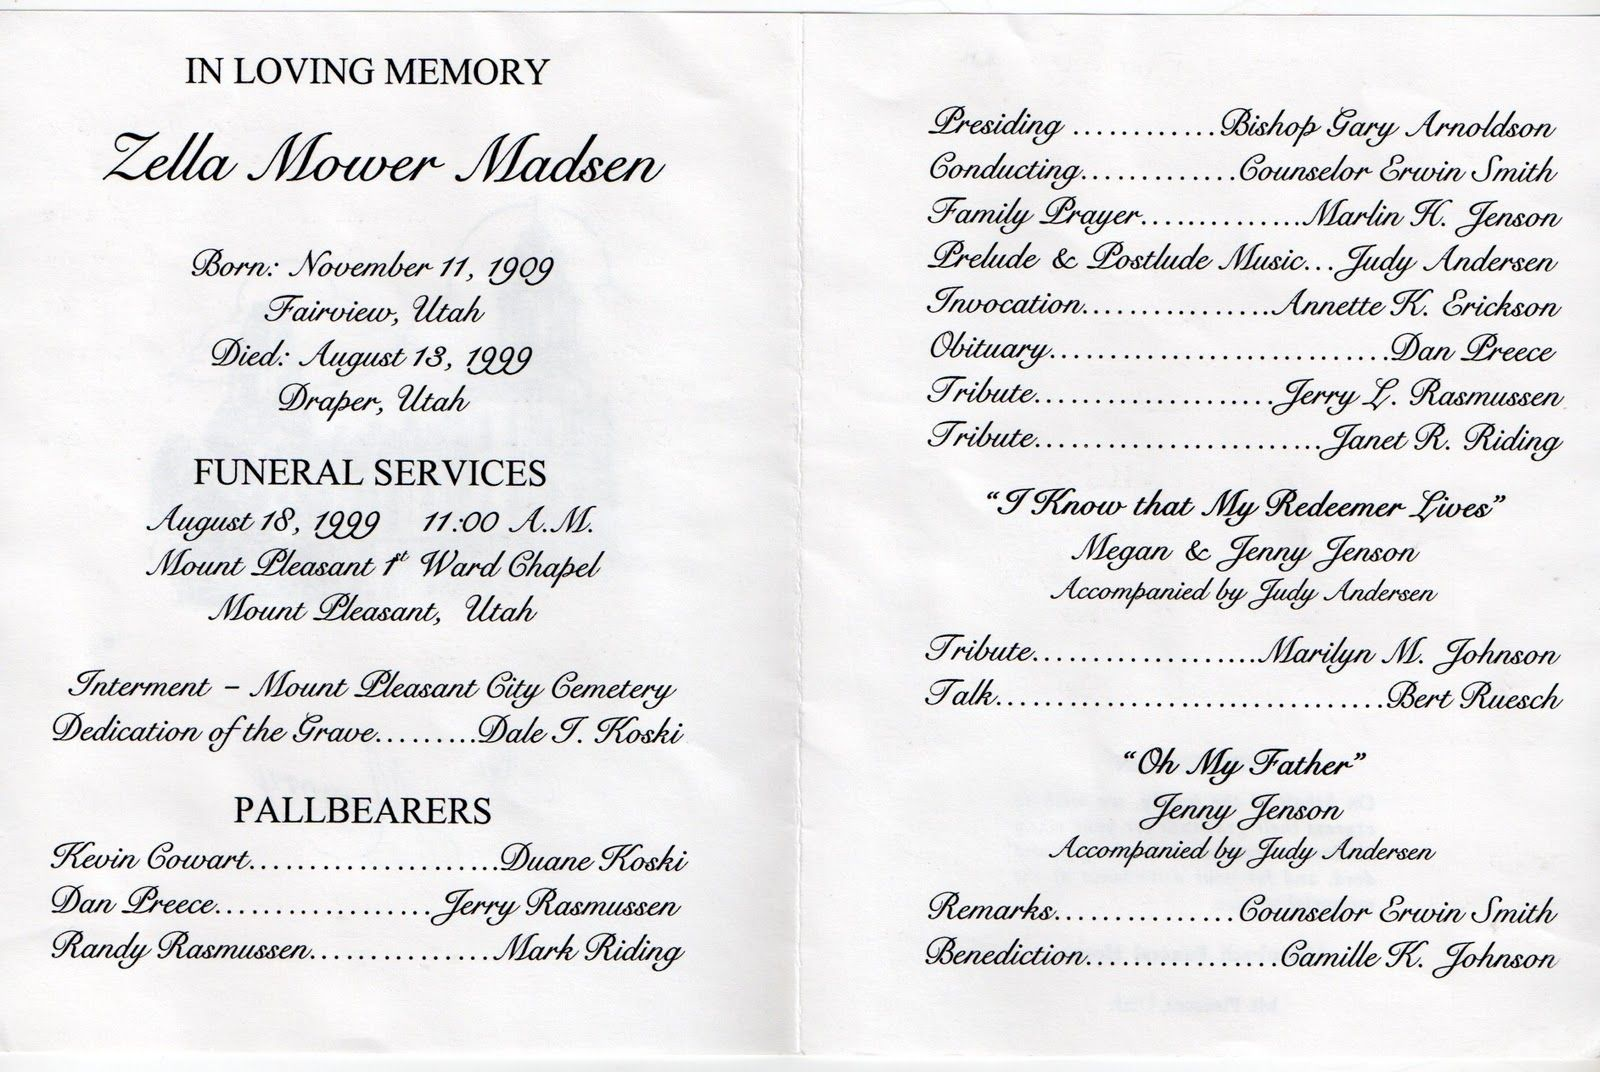 Mt Pleasant Obituary Page Zella Mower Madsen Funeral Program